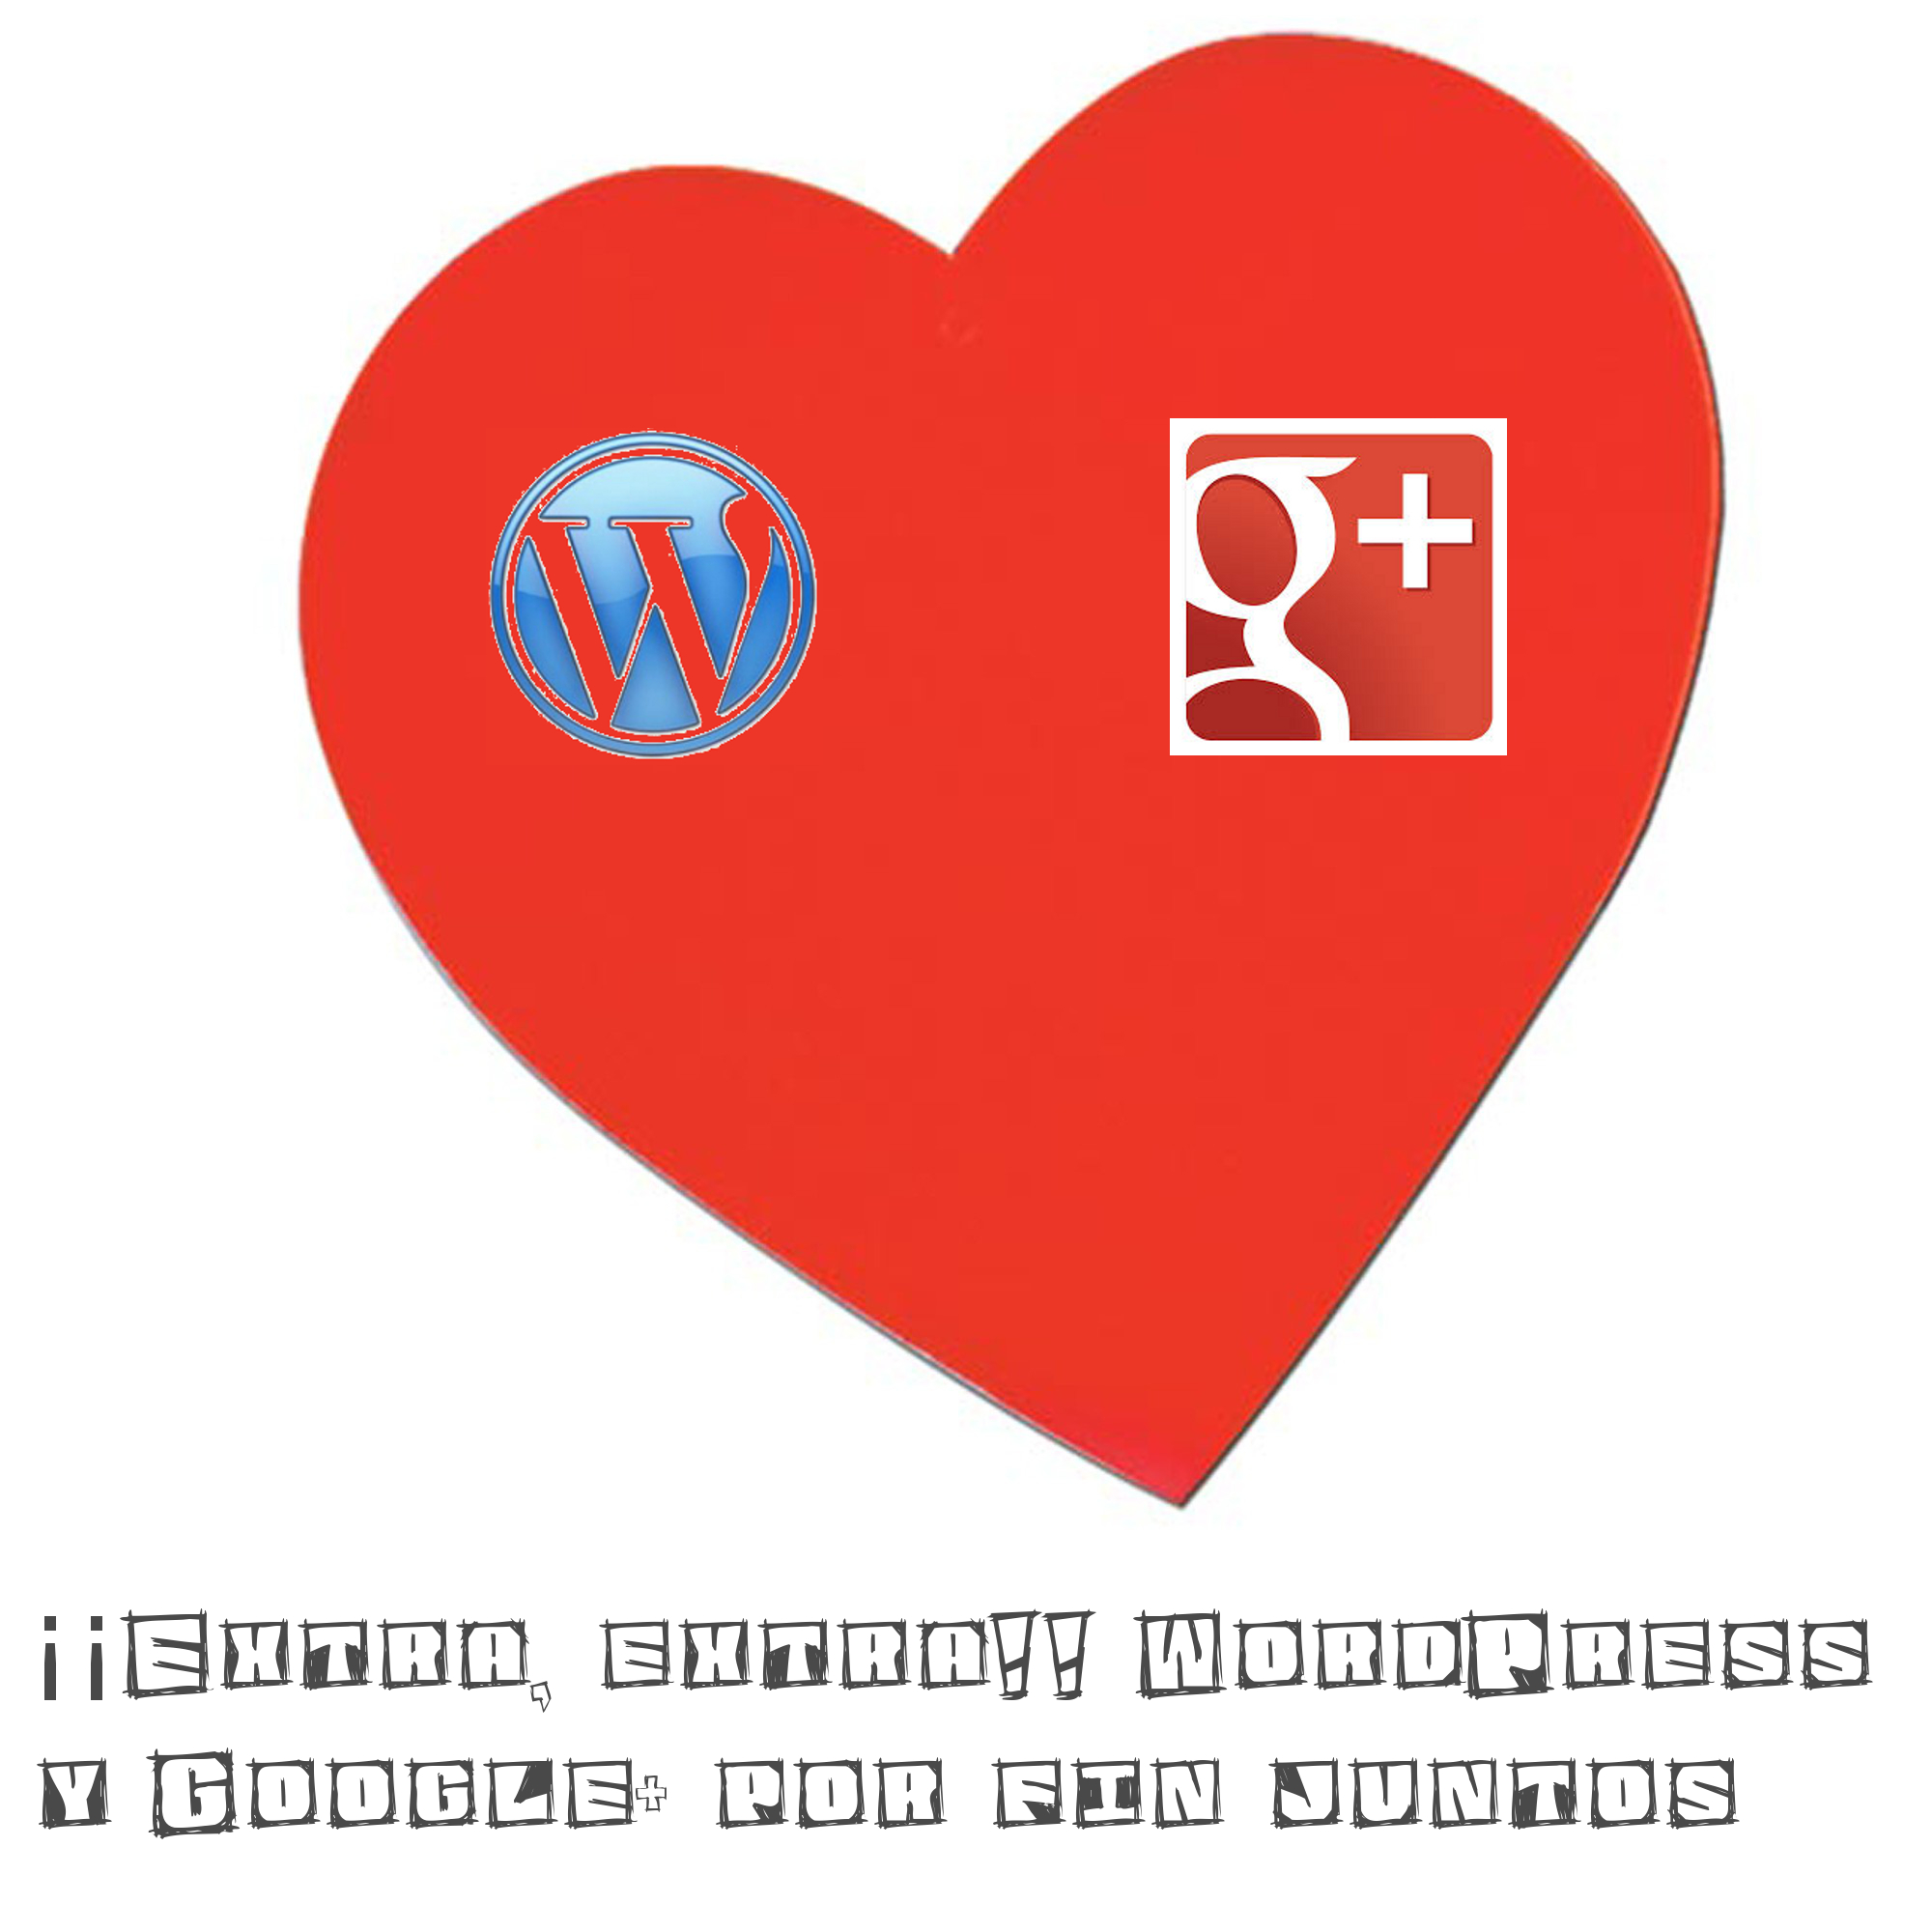 Google+ y WordPress por fin juntos